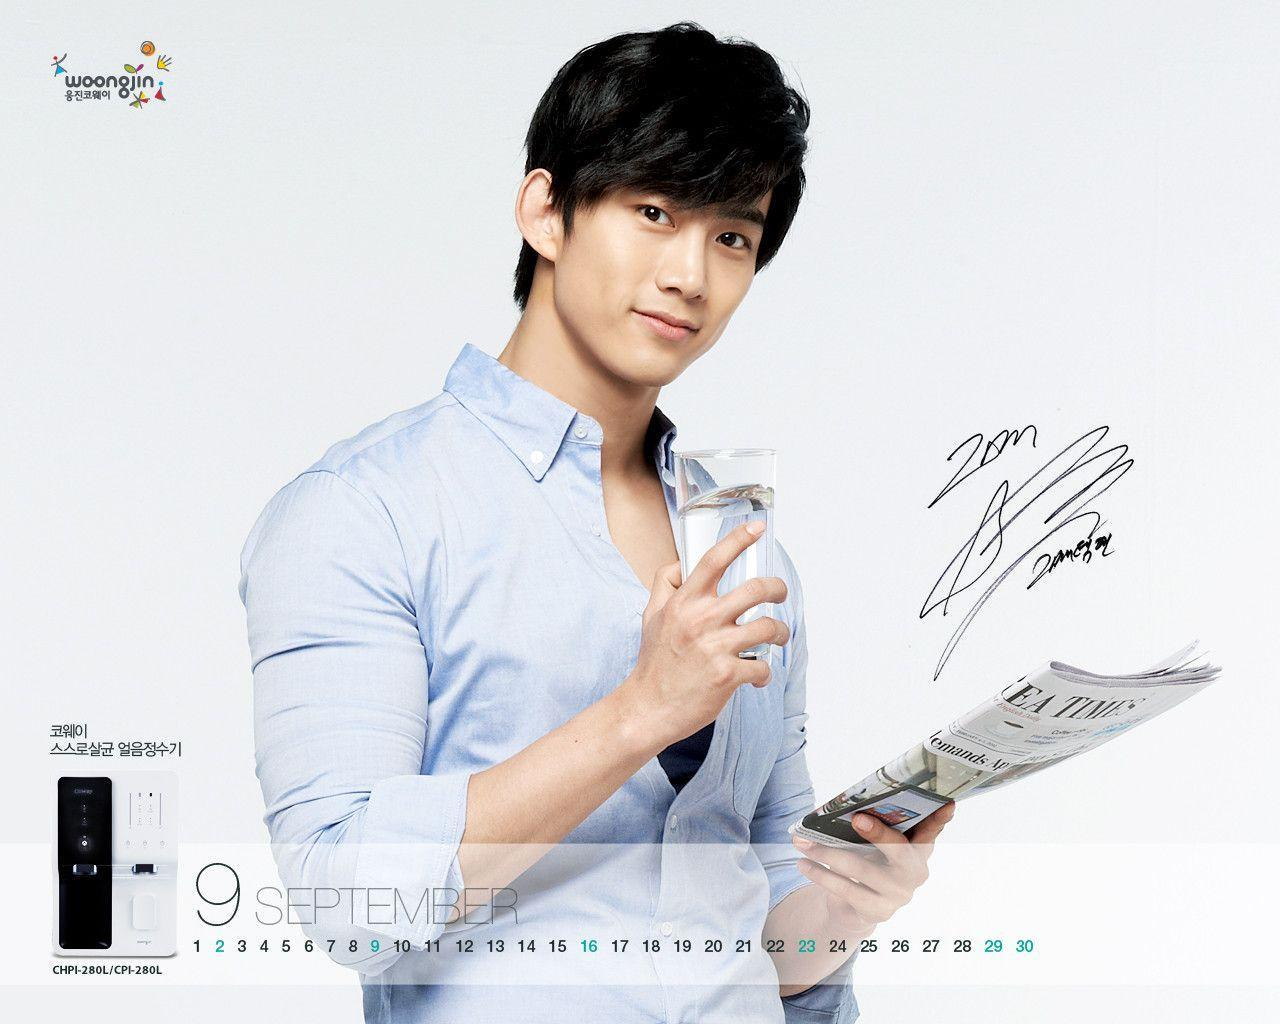 download Taecyeon 2015 Wallpapers [1280x1024] for your 1280x1024